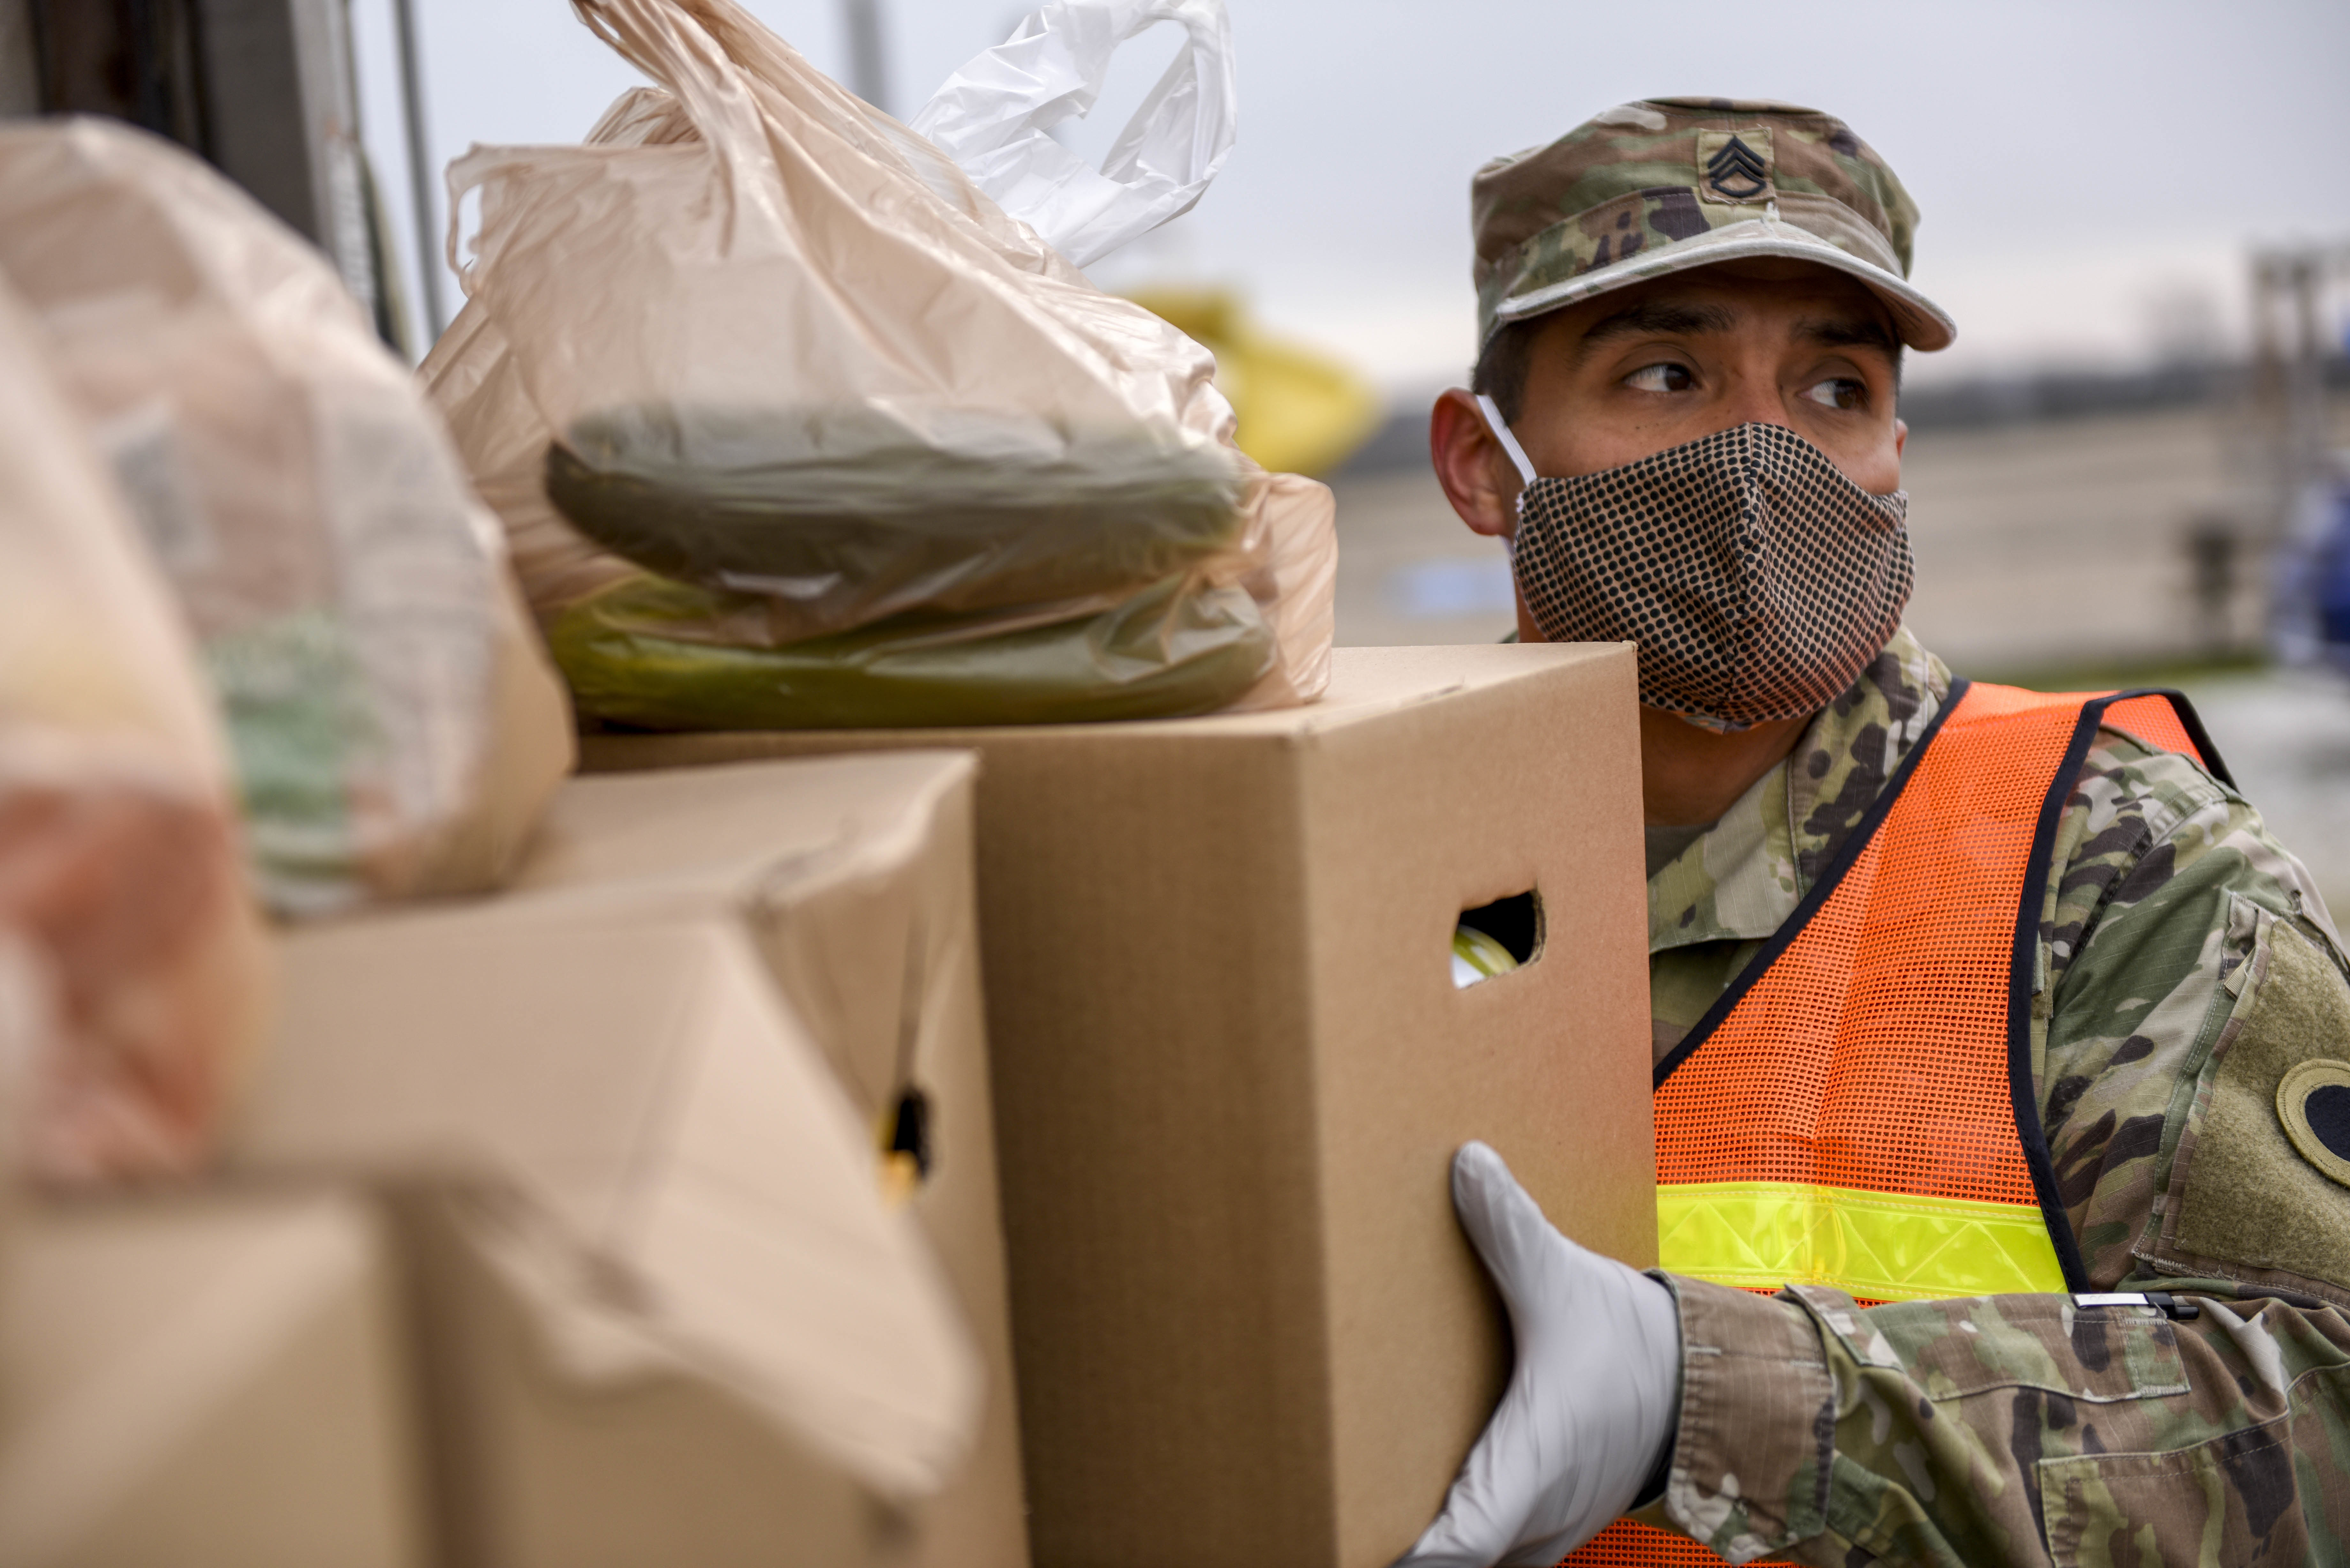 Soldiers unpack groceries at food bank.